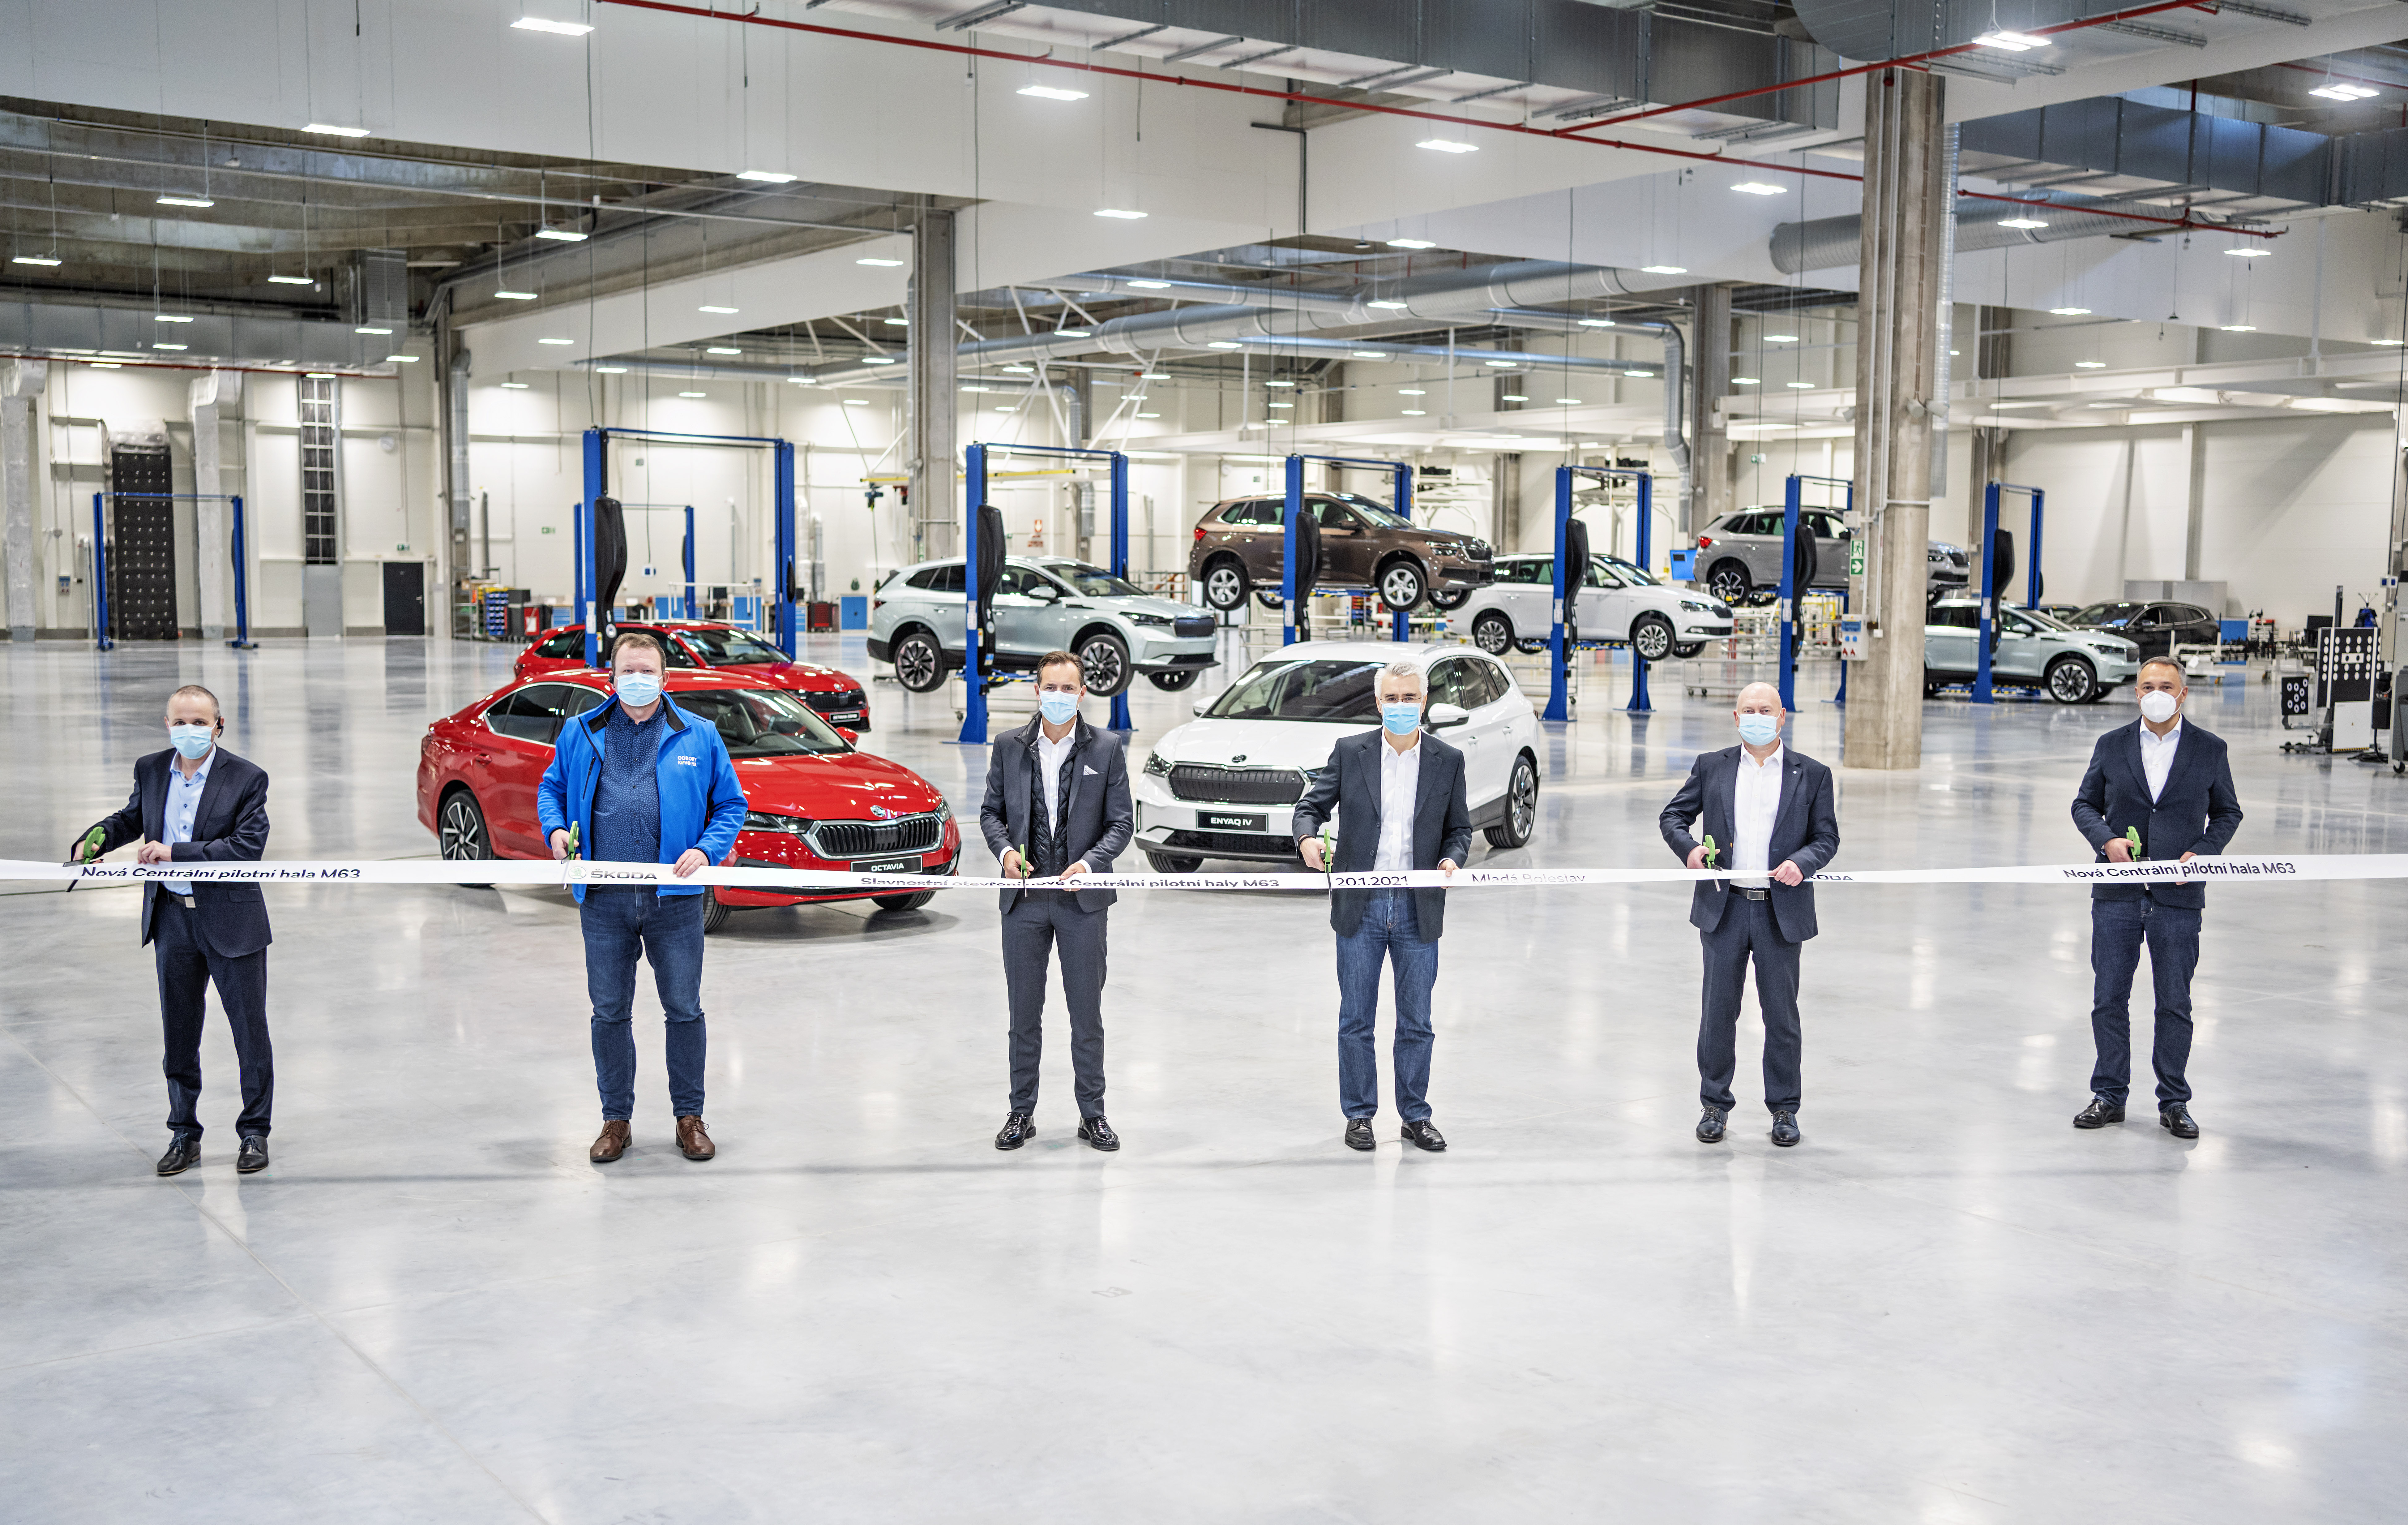 SKODA AUTO opens state-of-the-art new Central Pilot Hall at its Mladá Boleslav site - Image 3